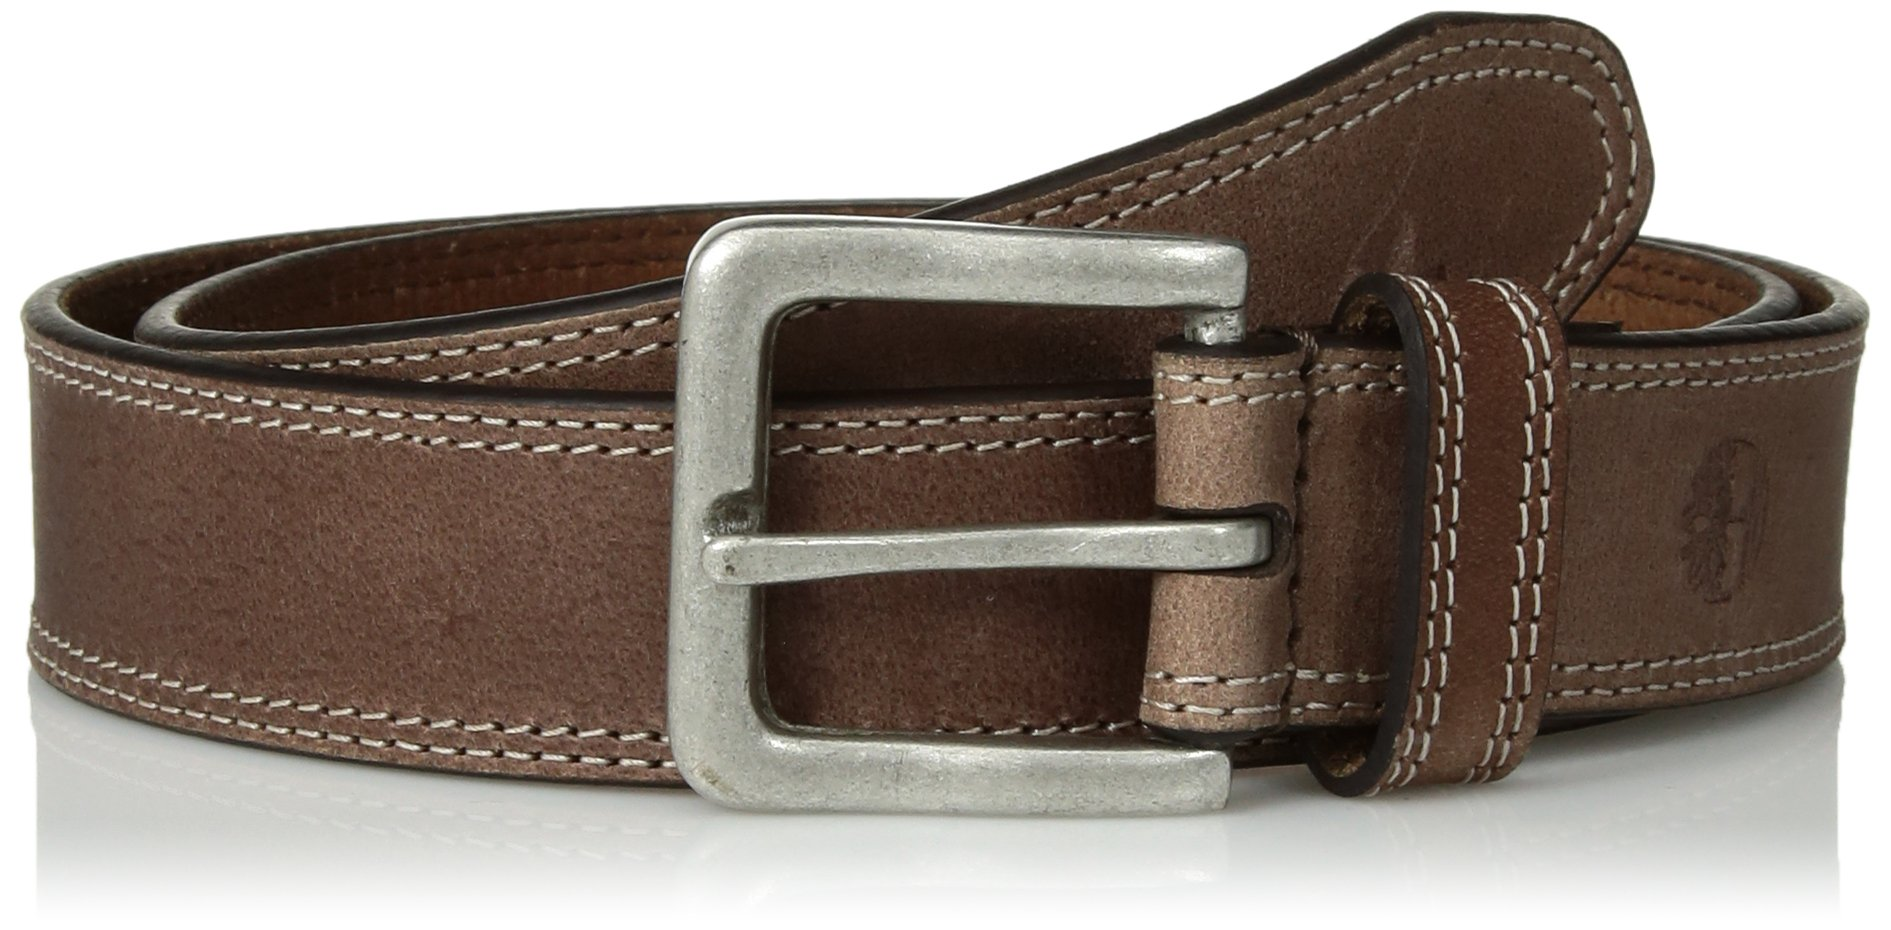 Timberland Men's 35mm Boot Leather Belt Dark Brown 32